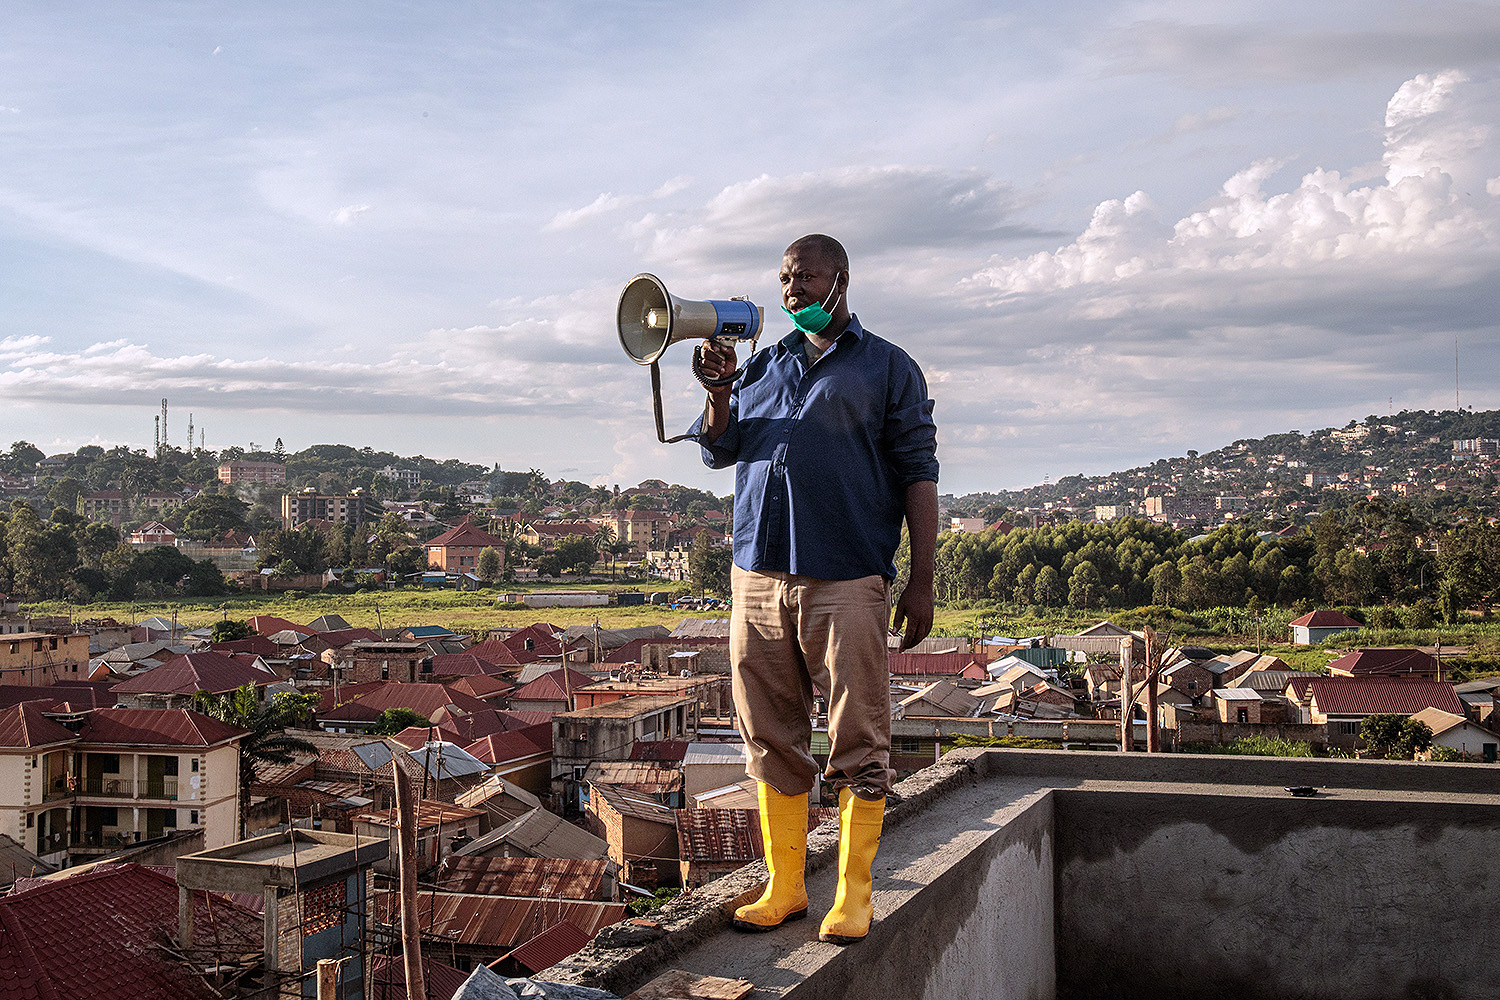 Gonzaga Yiga, a 49-year-old community chairman, makes an appeal to residents through a megaphone from the tallest building in Kampala, Uganda, on March 24. Yiga takes his perch every morning and evening to explain how the coronavirus spreads and how to avoid it. BADRU KATUMBA/AFP via Getty Images